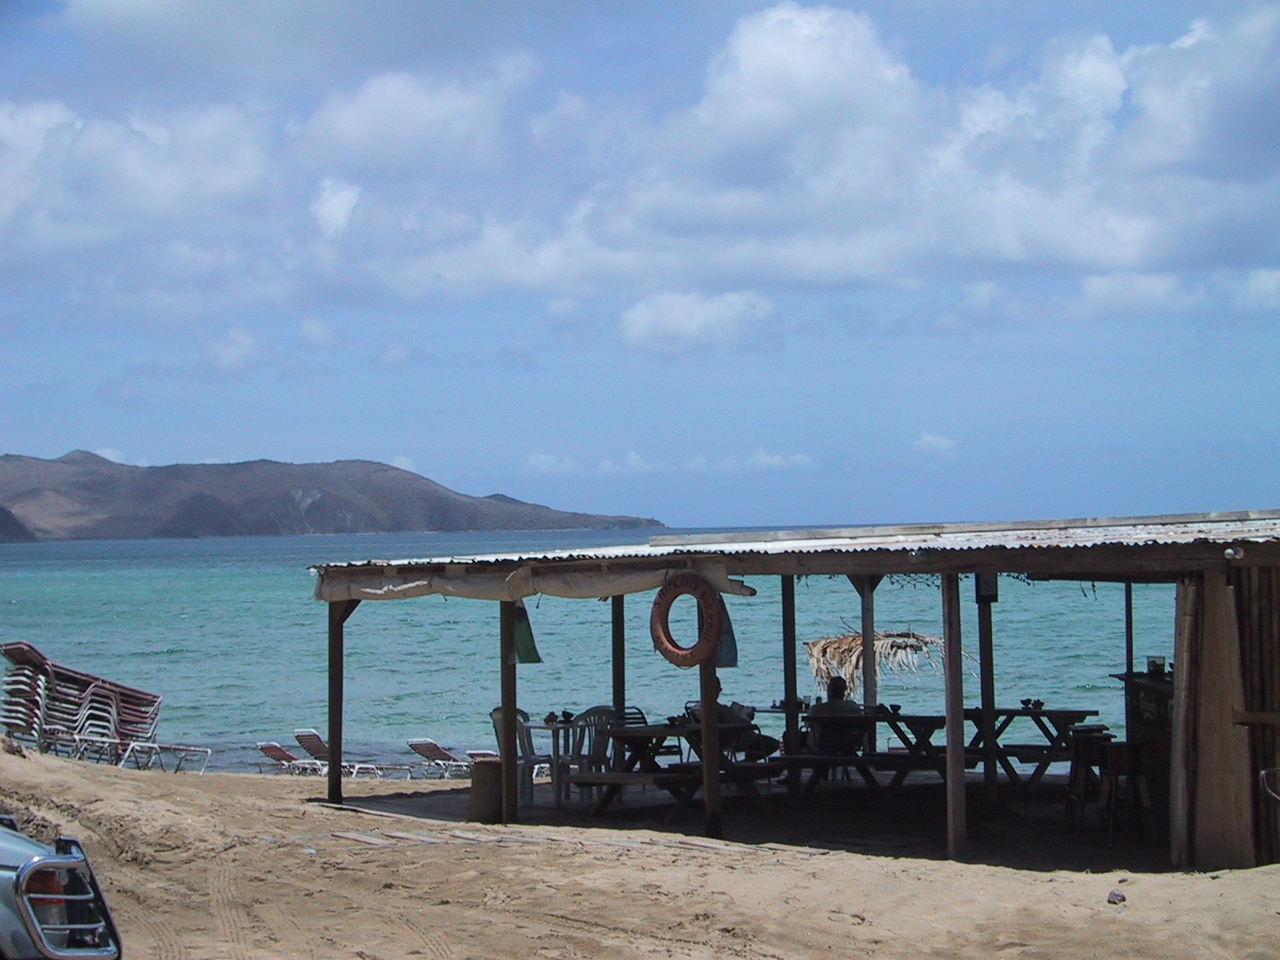 St. Kitts beach bar - replaced by Kaiwah development